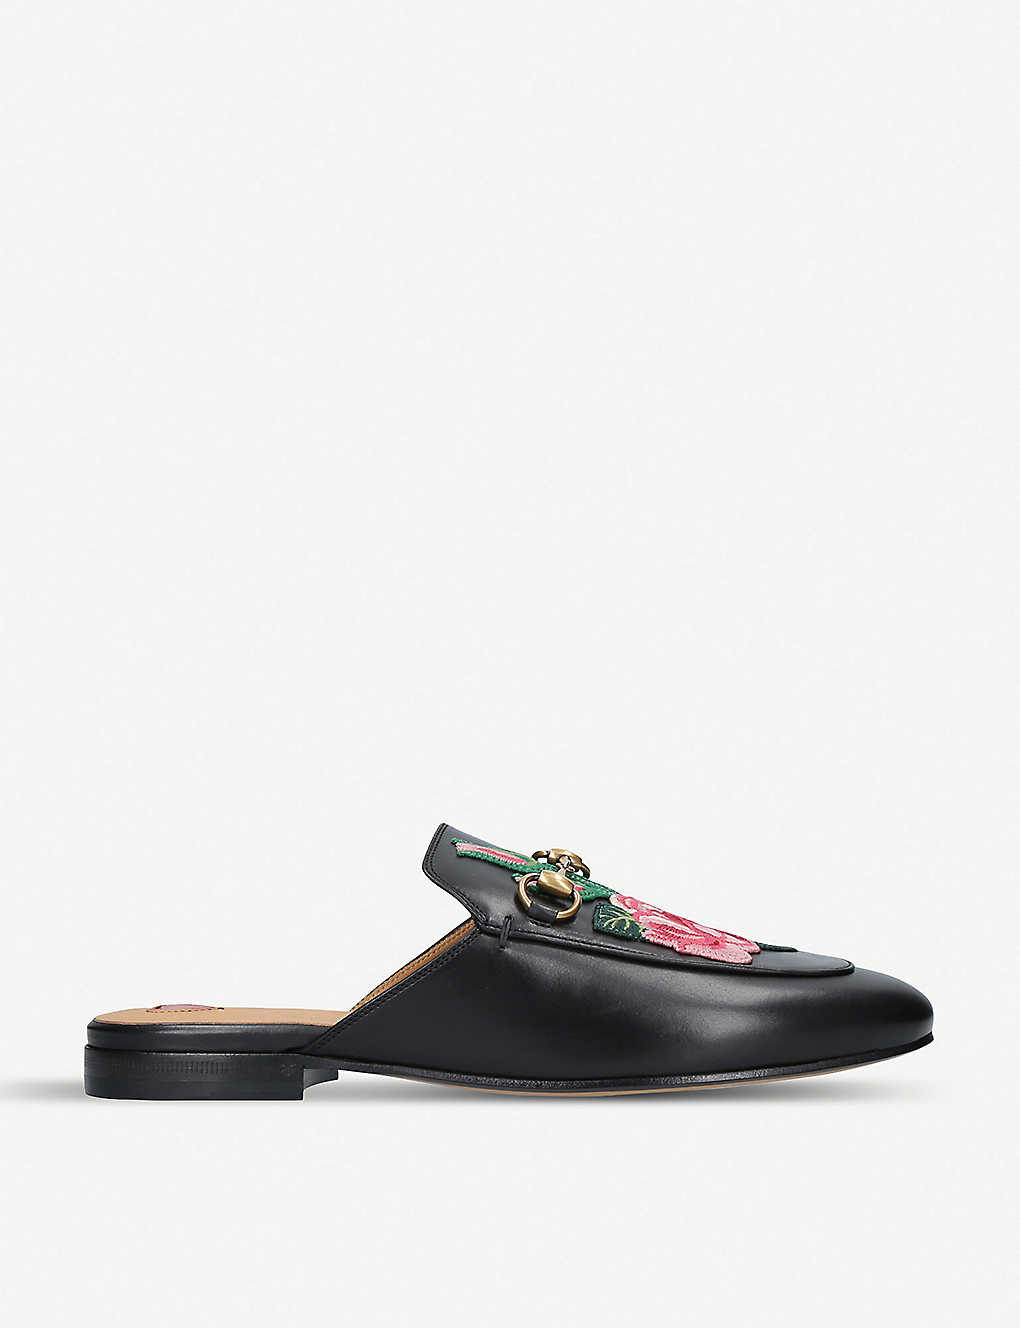 24289d3a4088 Princetown floral-embroidered leather slippers - Black ...